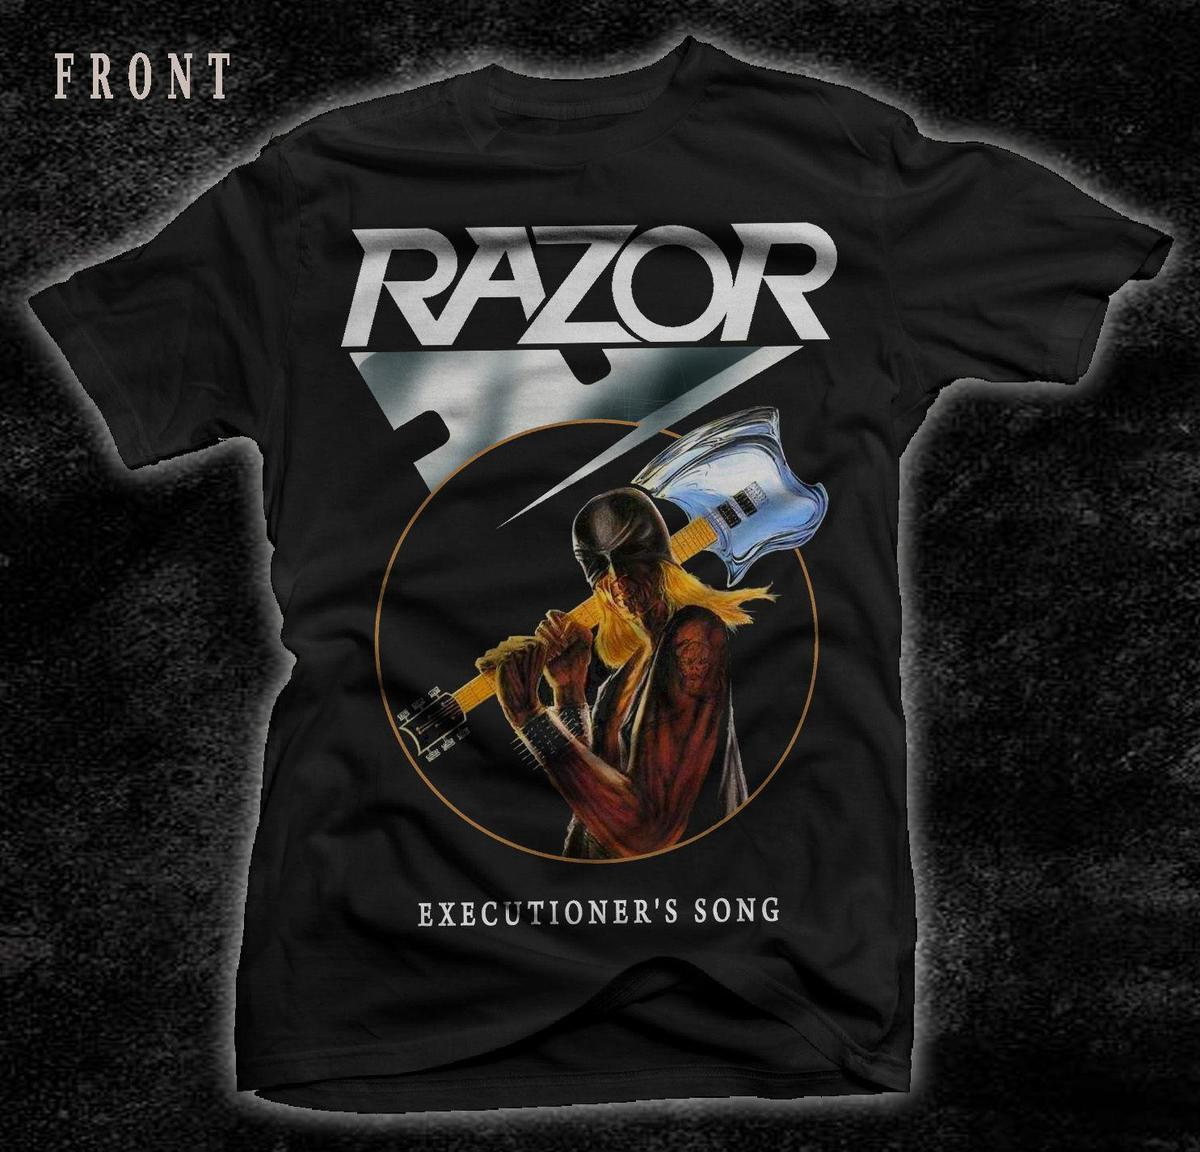 mens designer t shirts shirt RAZOR-Executioner's Song- Speed metal-Exciter-Rush ,T-shirt-SIZES: S to 7XL